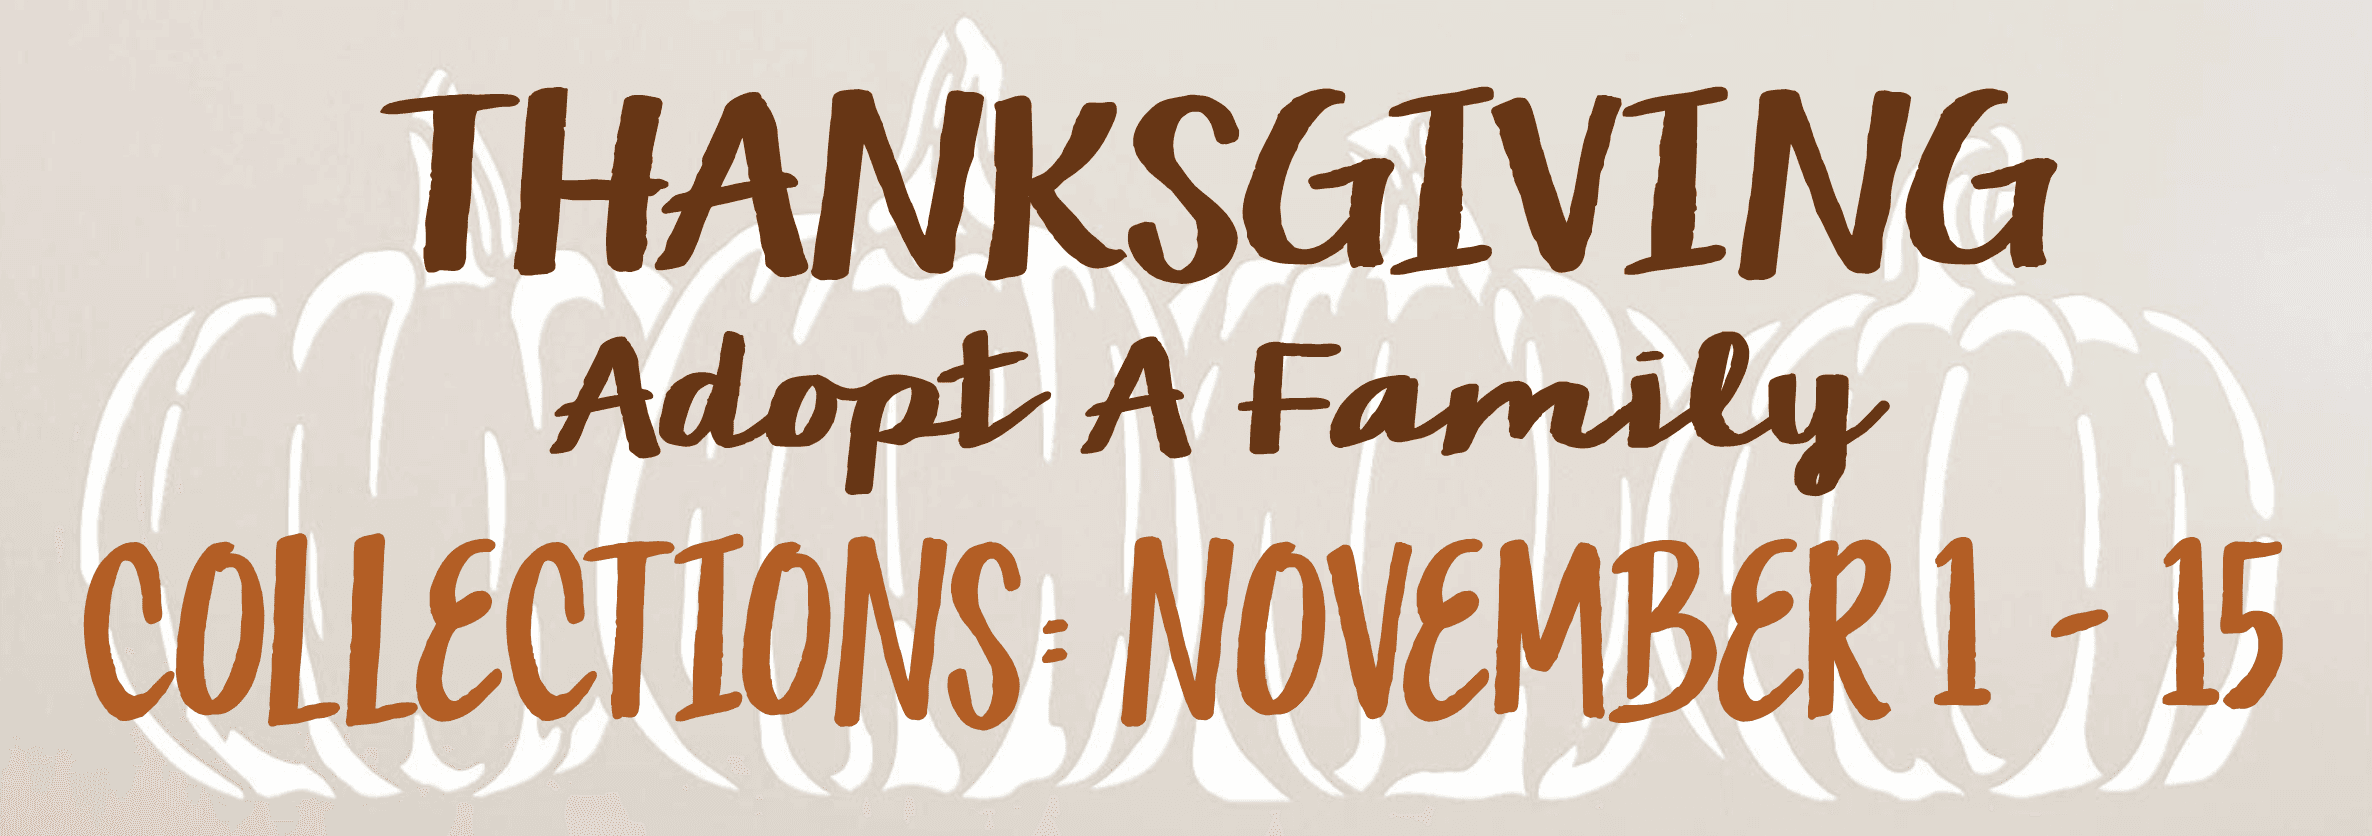 Thanksgiving Adopt A Family November 1-15 with pumpkins in background